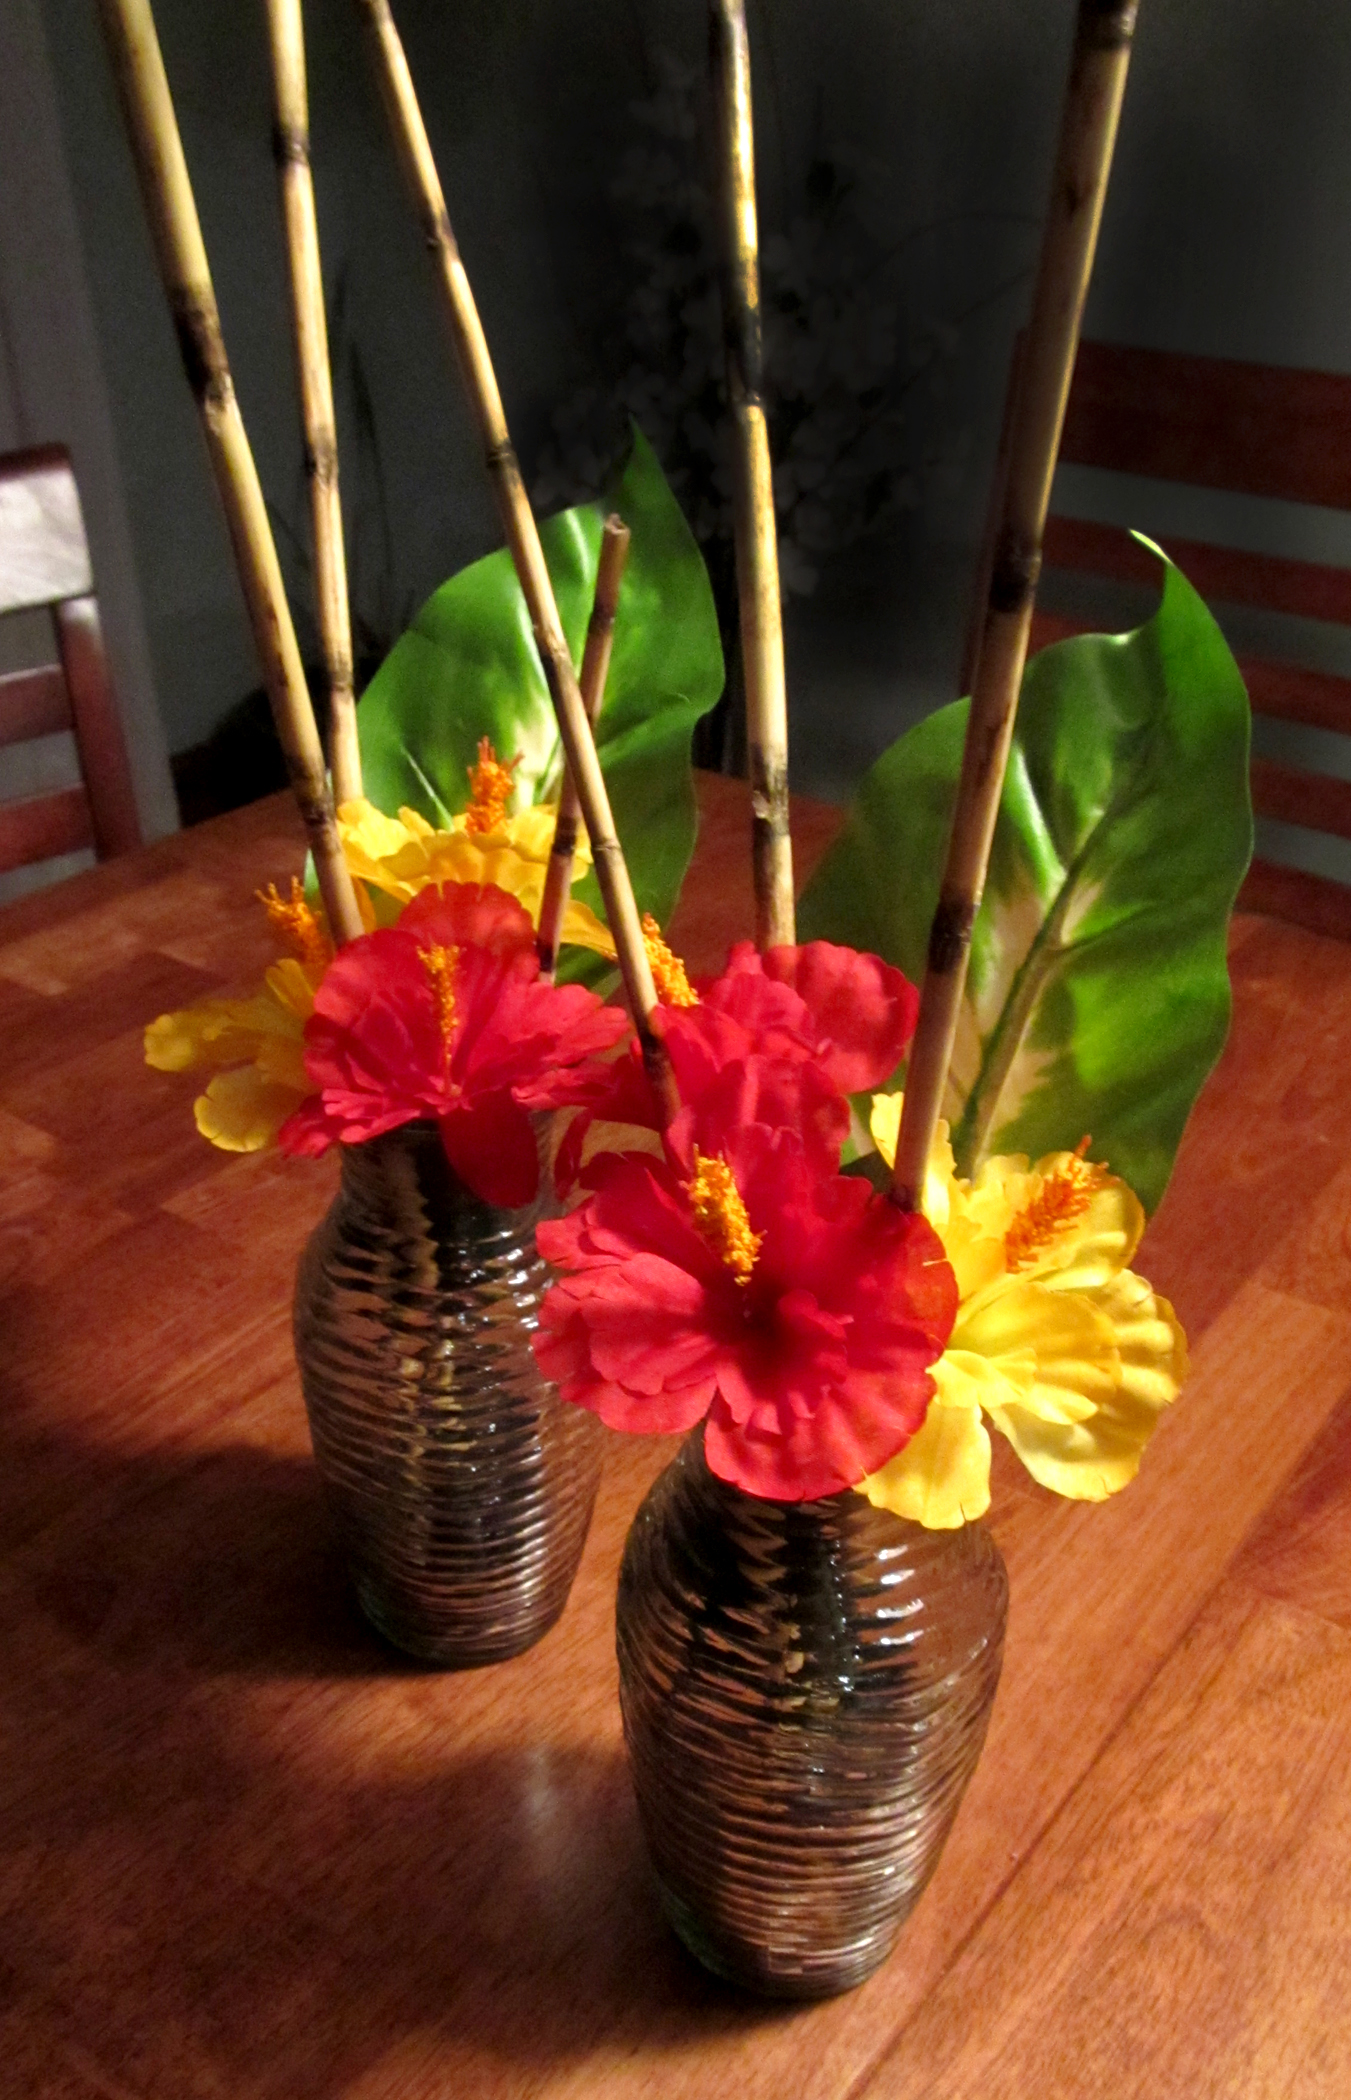 Tropical centerpiece swankee yankee